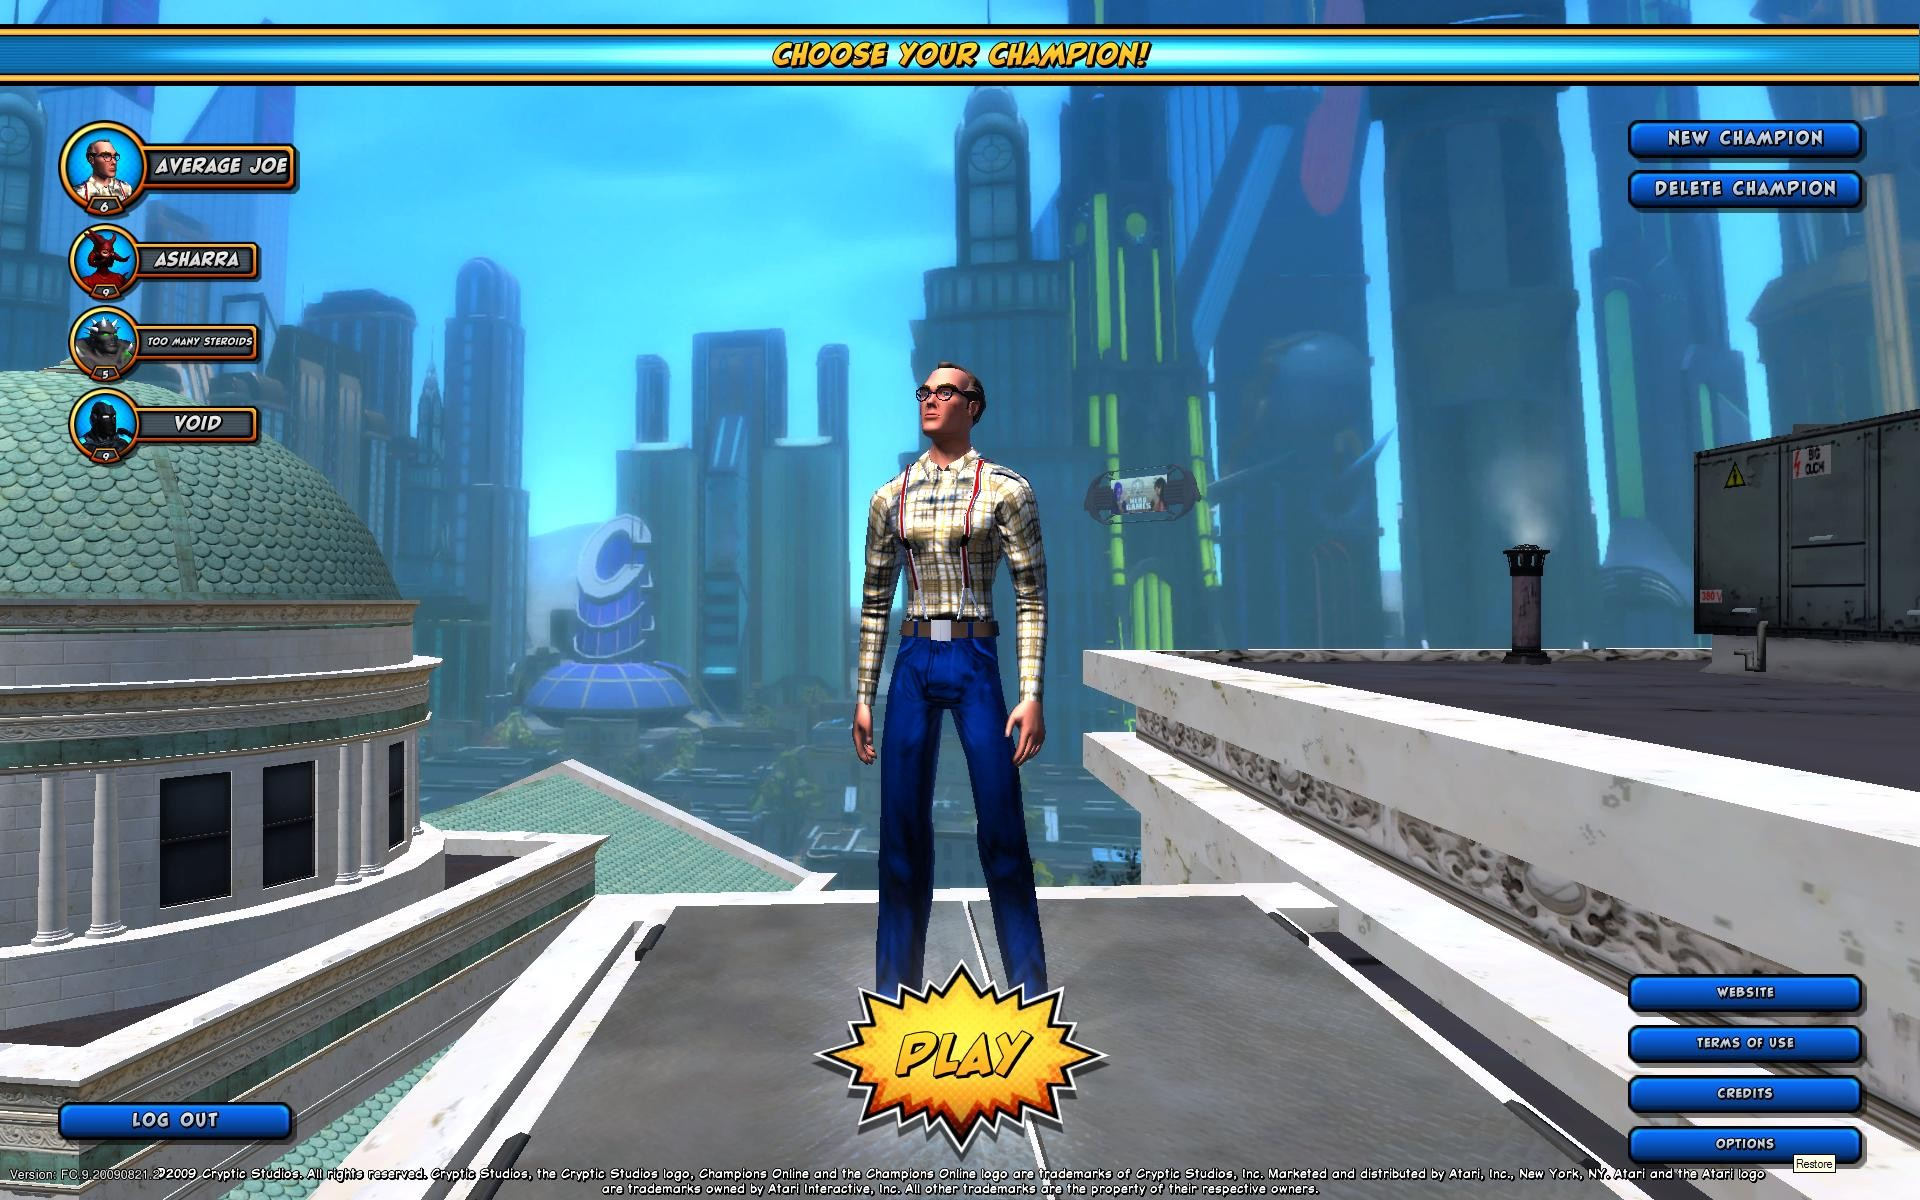 Champions Online - Fun toon to play